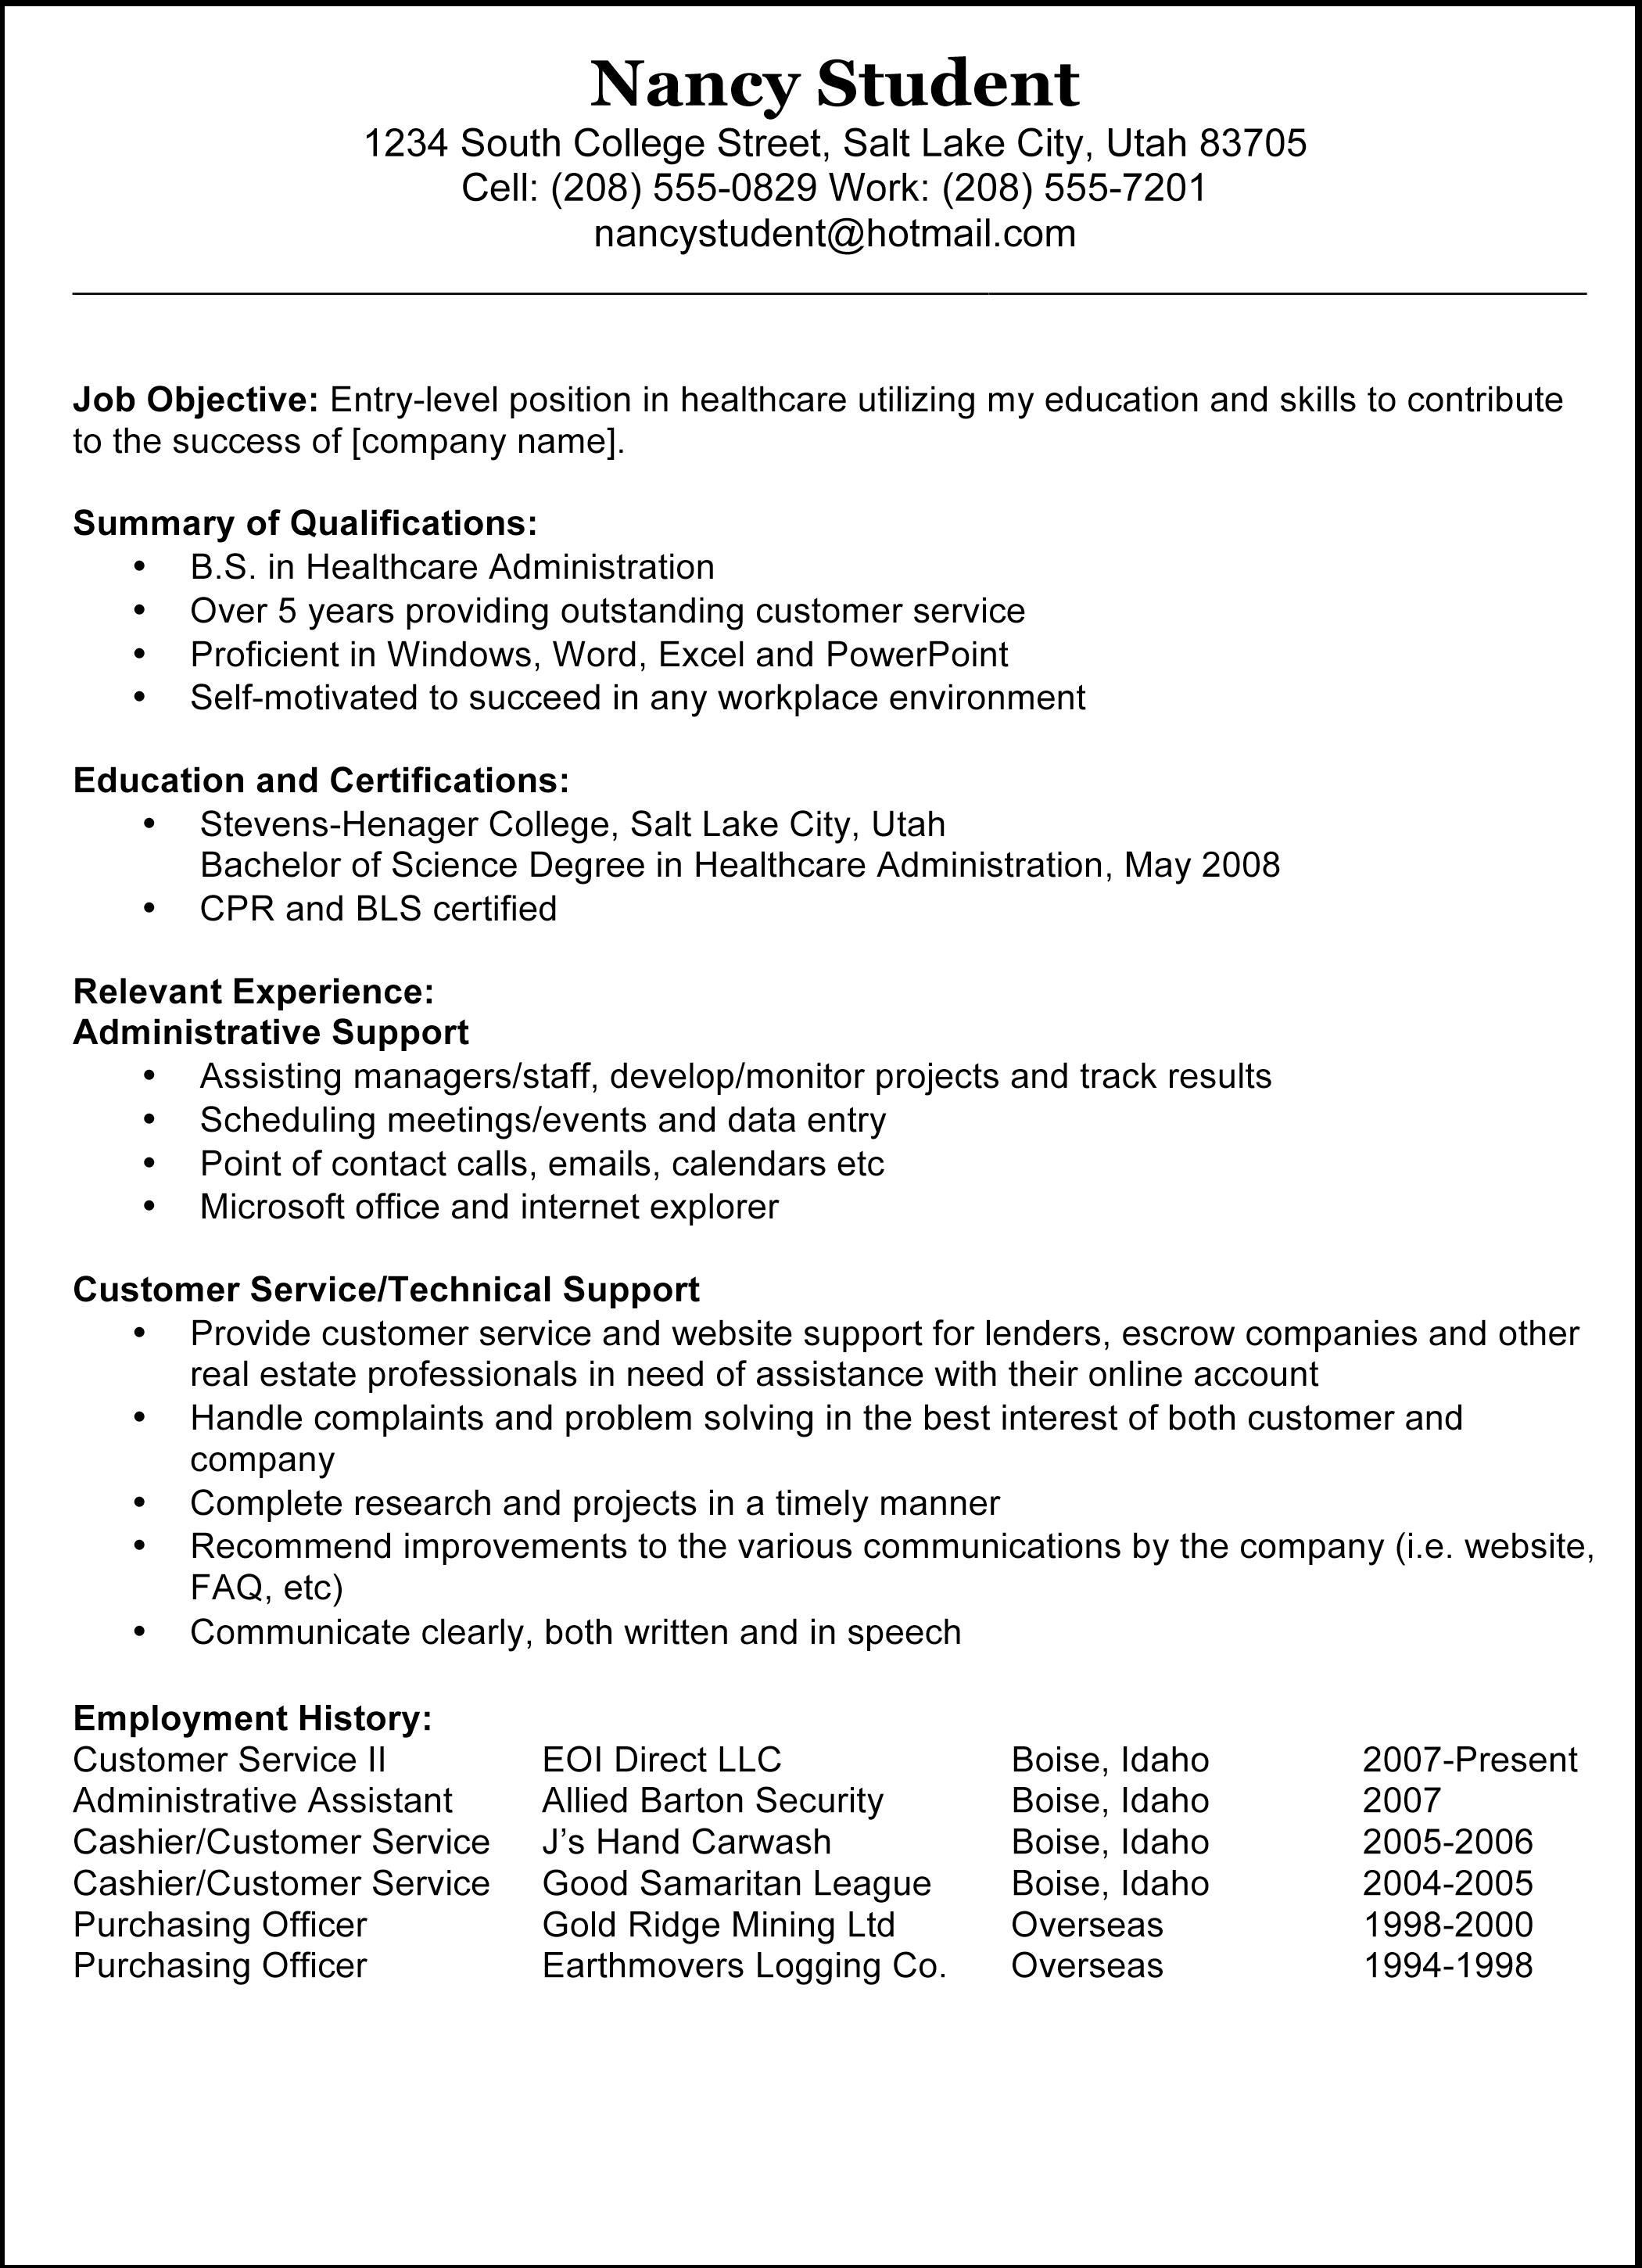 Resume Examples Me Nbspthis Website Is For Sale Nbspresume Examples Resources And Information Resume Objective Examples Sample Resume Templates Teacher Resume Examples